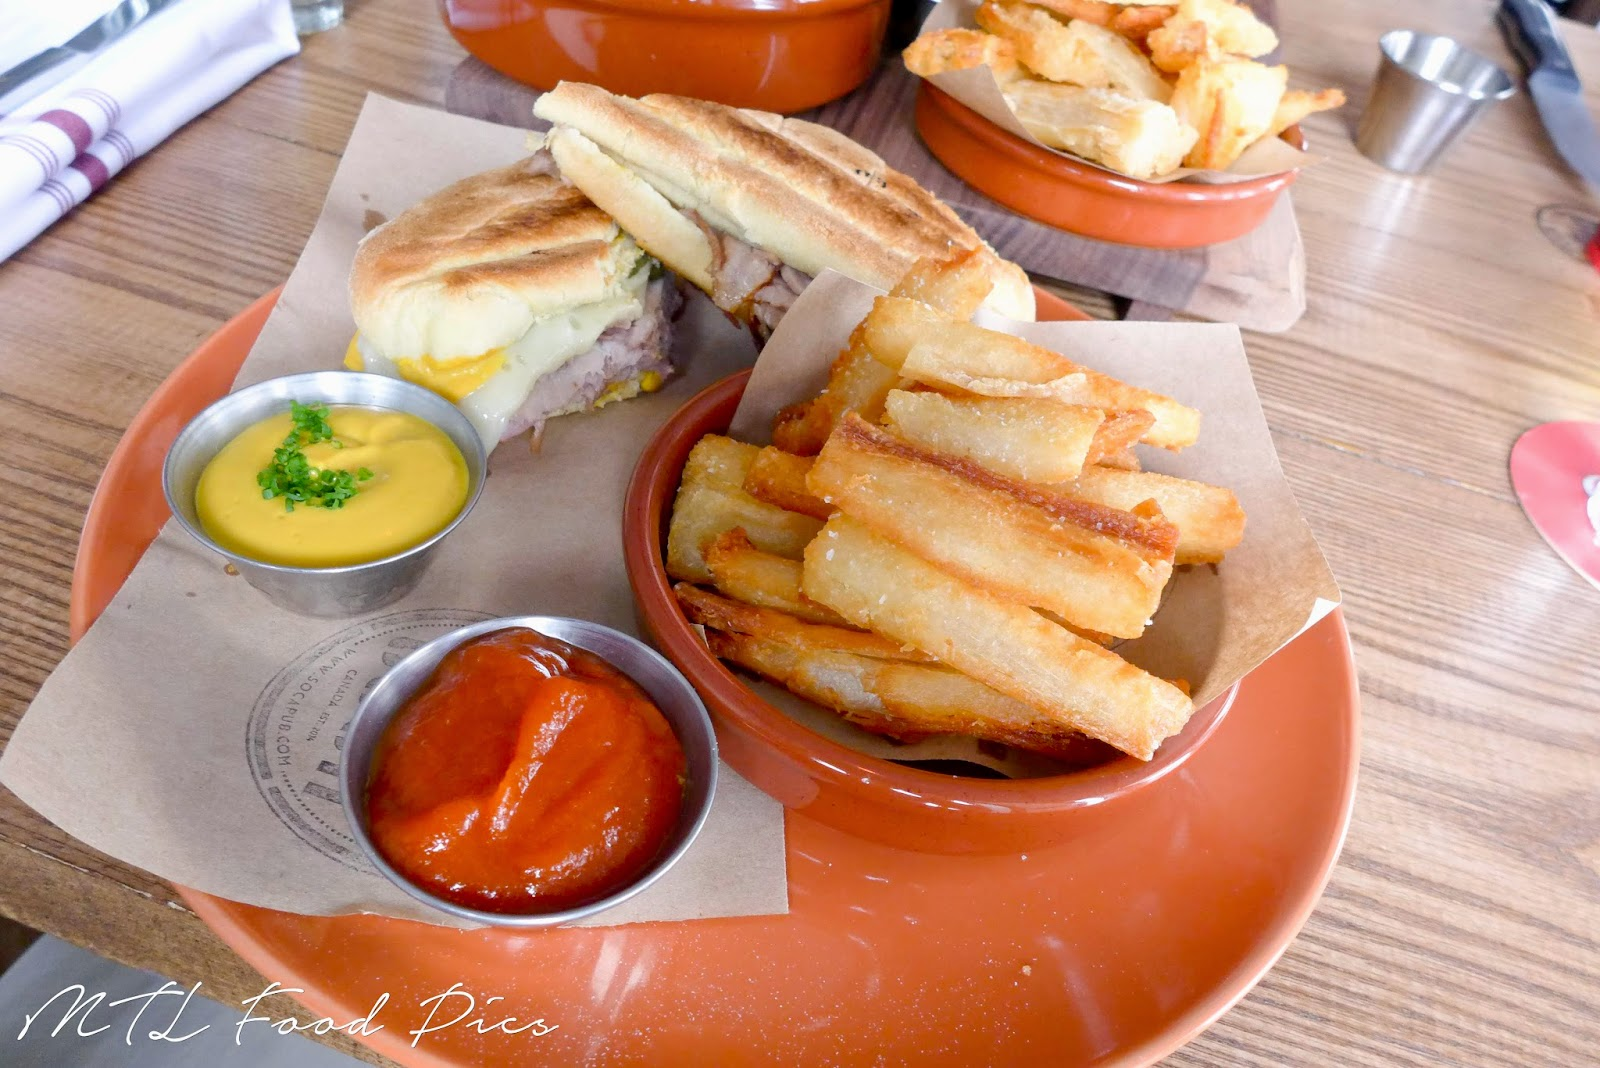 cuban sandwich with yuca fries - latin food